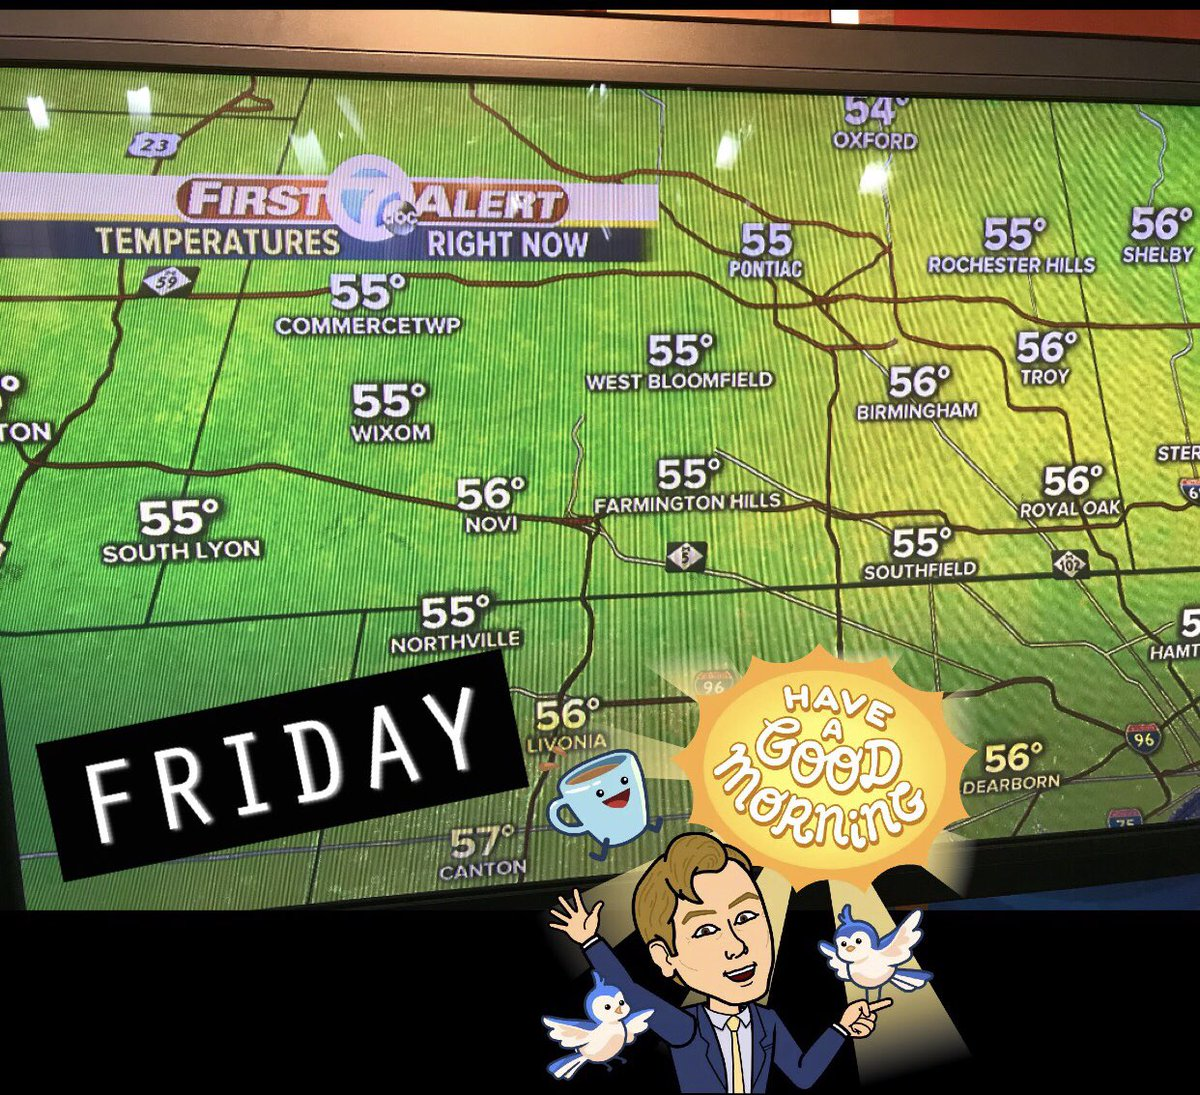 """Hasn't been this """"cold"""" since June 23rd.  #ILikeIt #MIwx #Friday<br>http://pic.twitter.com/g3f1IFDLPz"""